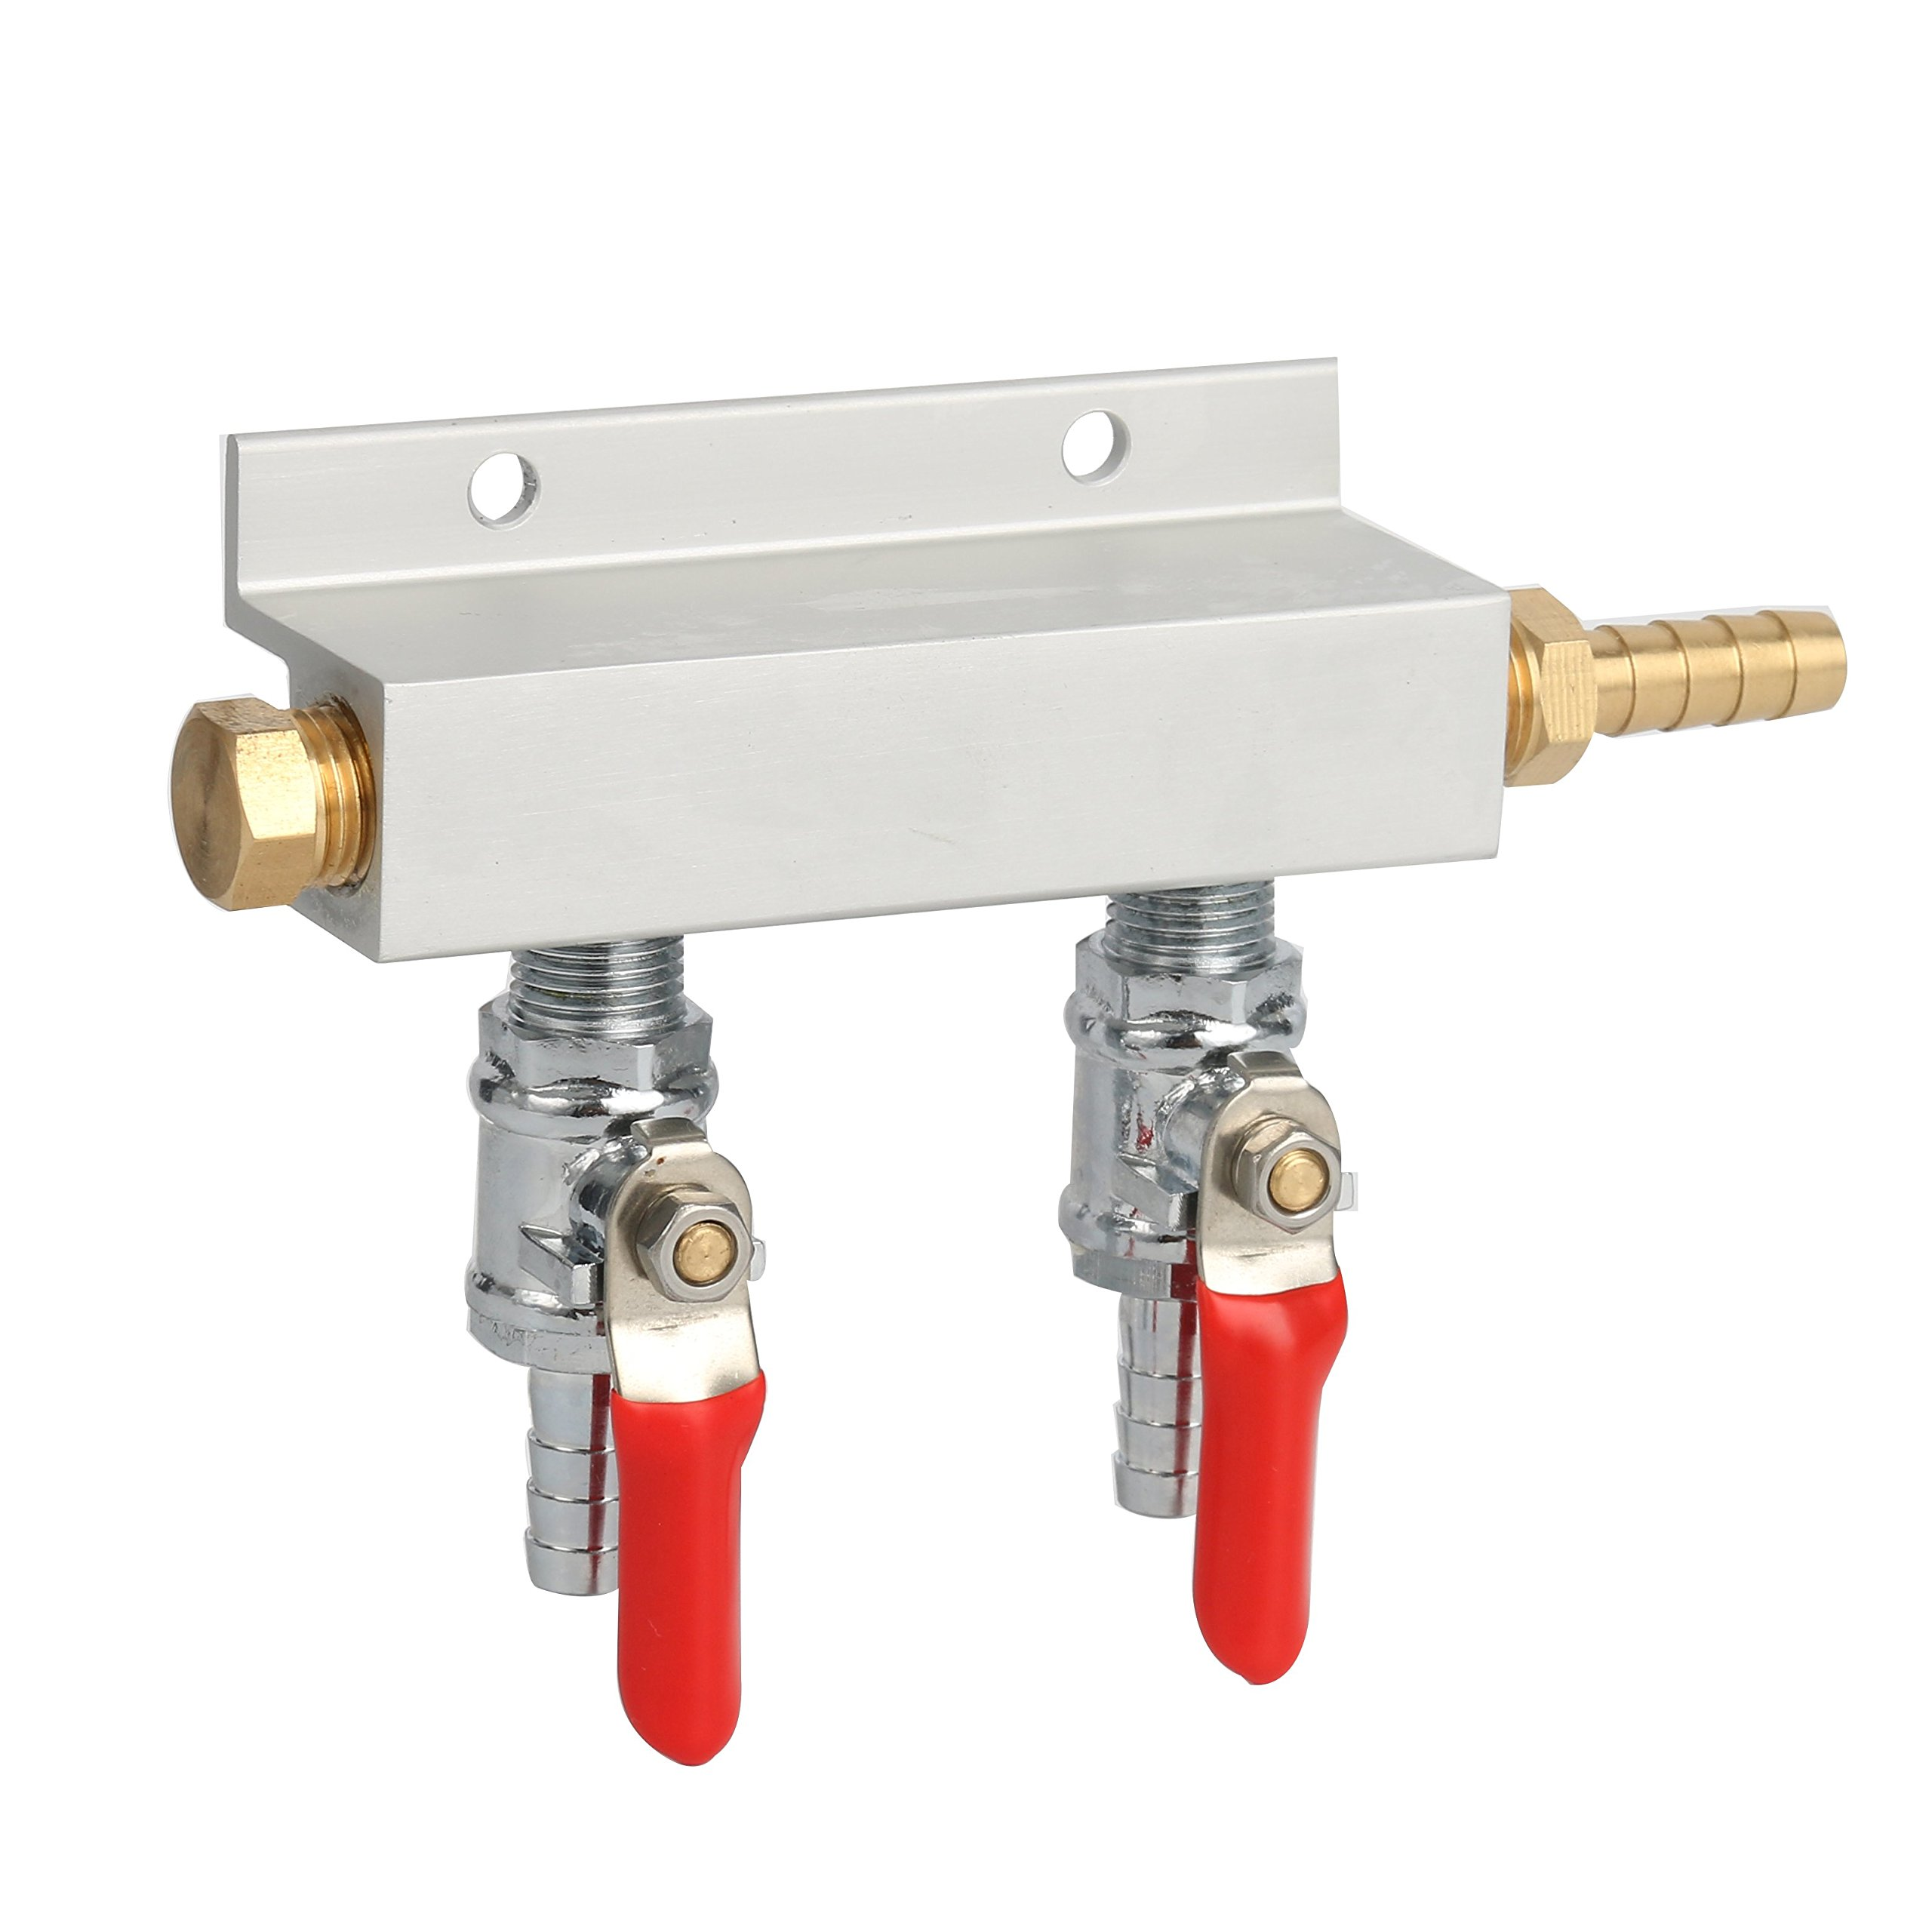 YaeBrew Gas Manifold, Beer Gas Distributor, Air Distributor CO2 Manifold - Splitter 5/16'' Barb Fittings (2 Way)